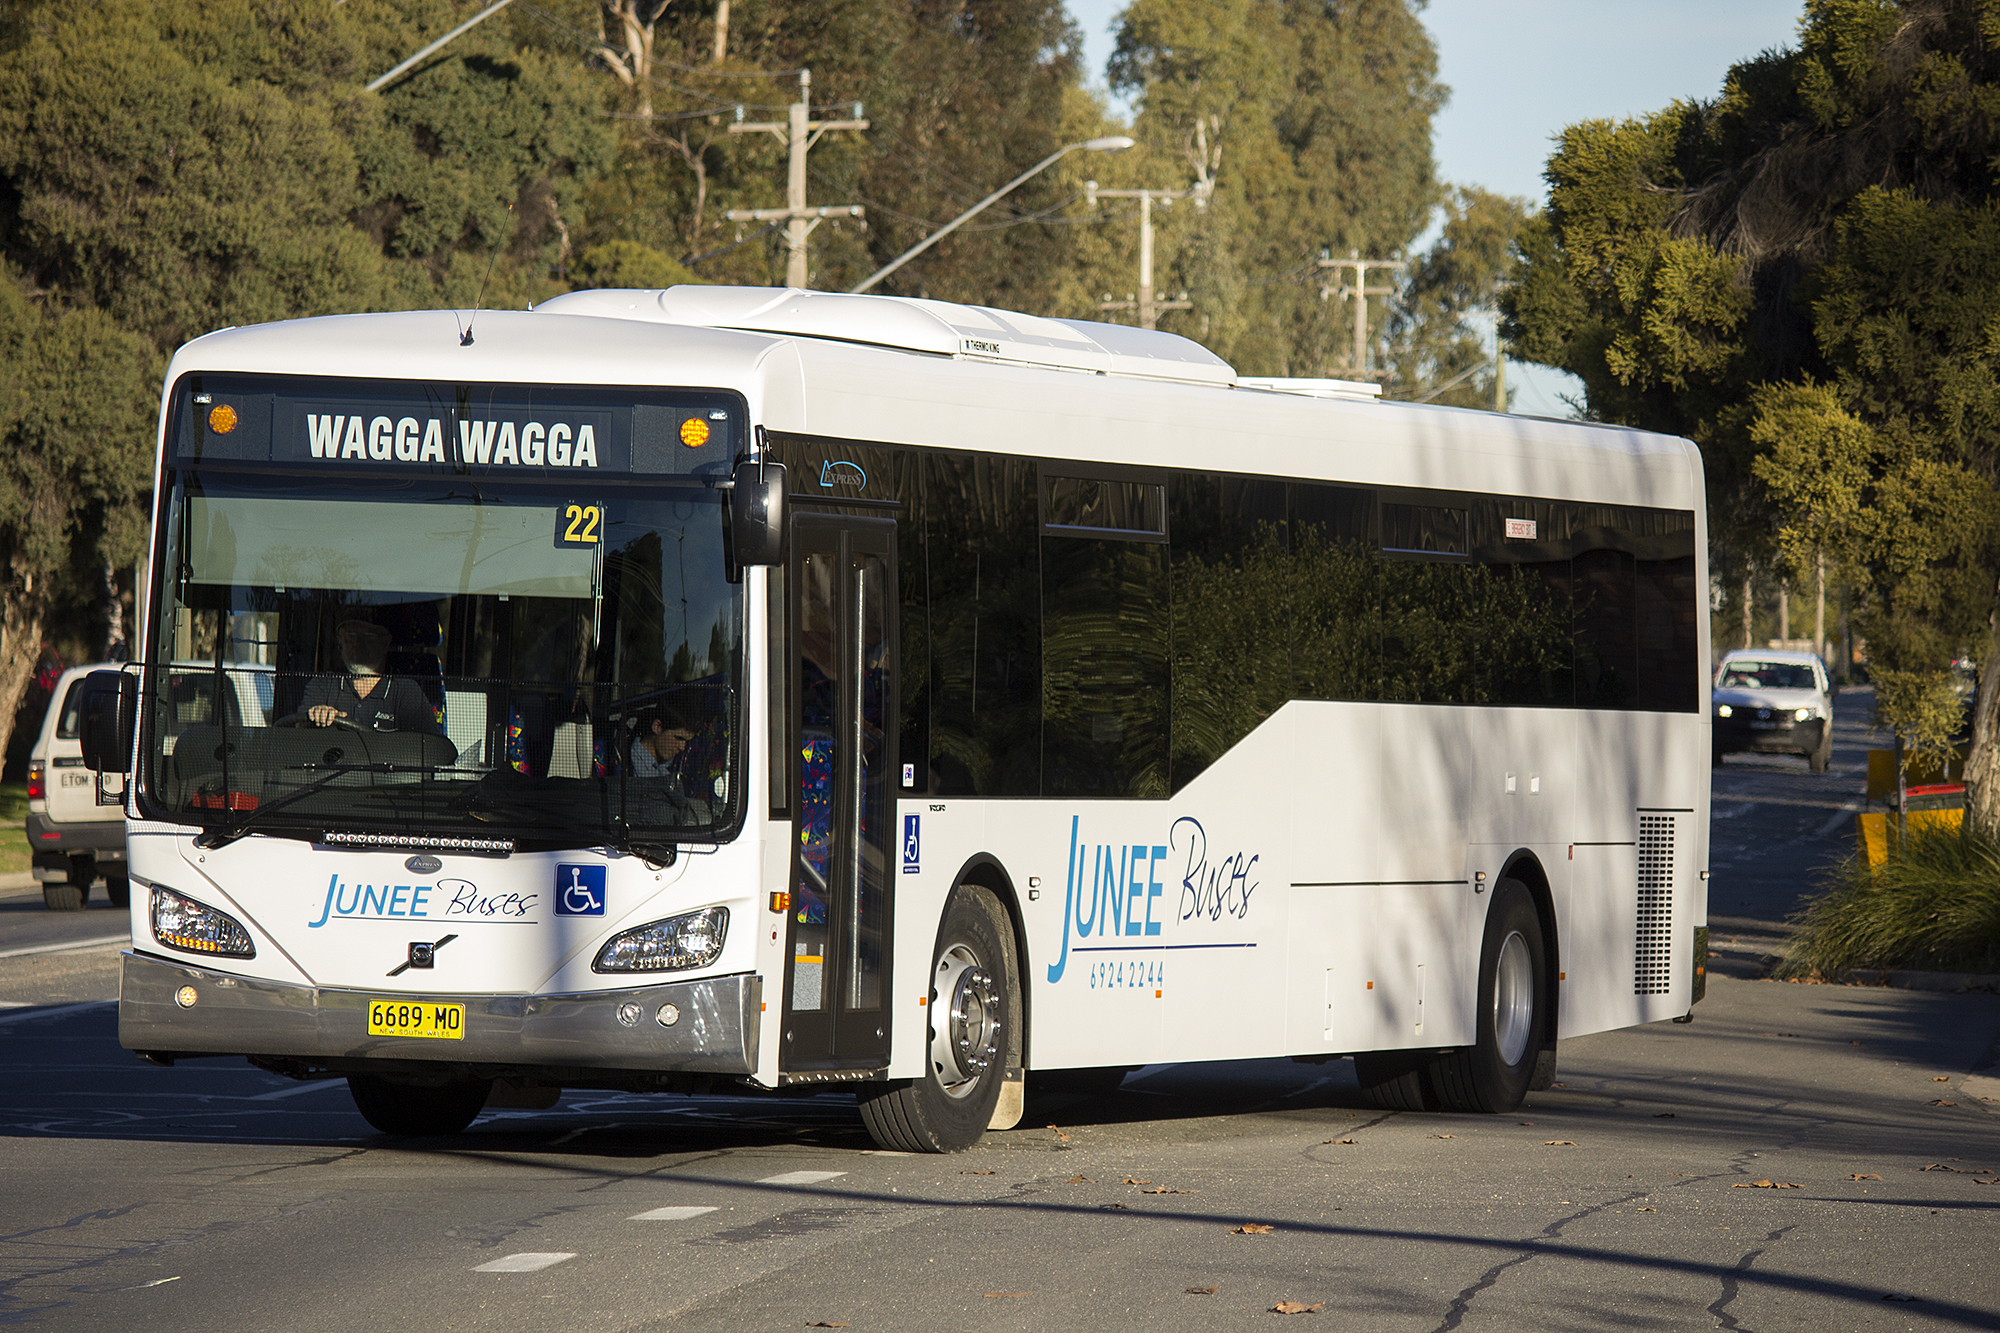 El juego de las imagenes-http://upload.wikimedia.org/wikipedia/commons/a/ab/Junee_Buses_(6689_MO)_Express_bodied_Volvo_B7RLE_on_Tarcutta_Street,_Wagga_Wagga.jpg